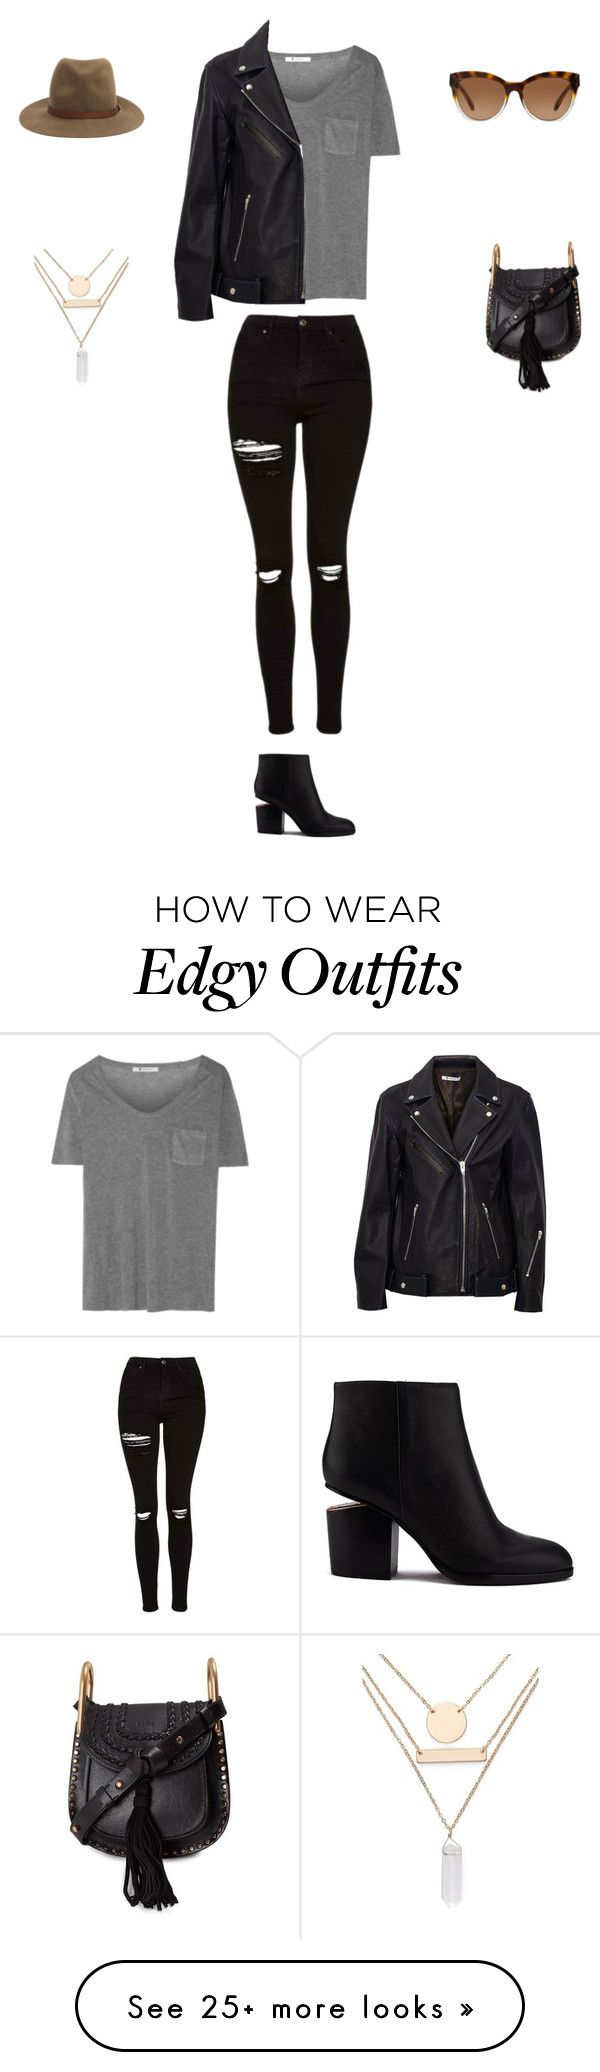 """Edgy Chic"" by kimpichu on Polyvore featuring T By Alexander Wang, Topshop, Alexander Wang, rag & bone, Michael Kors, Chloé and Jules Smith"